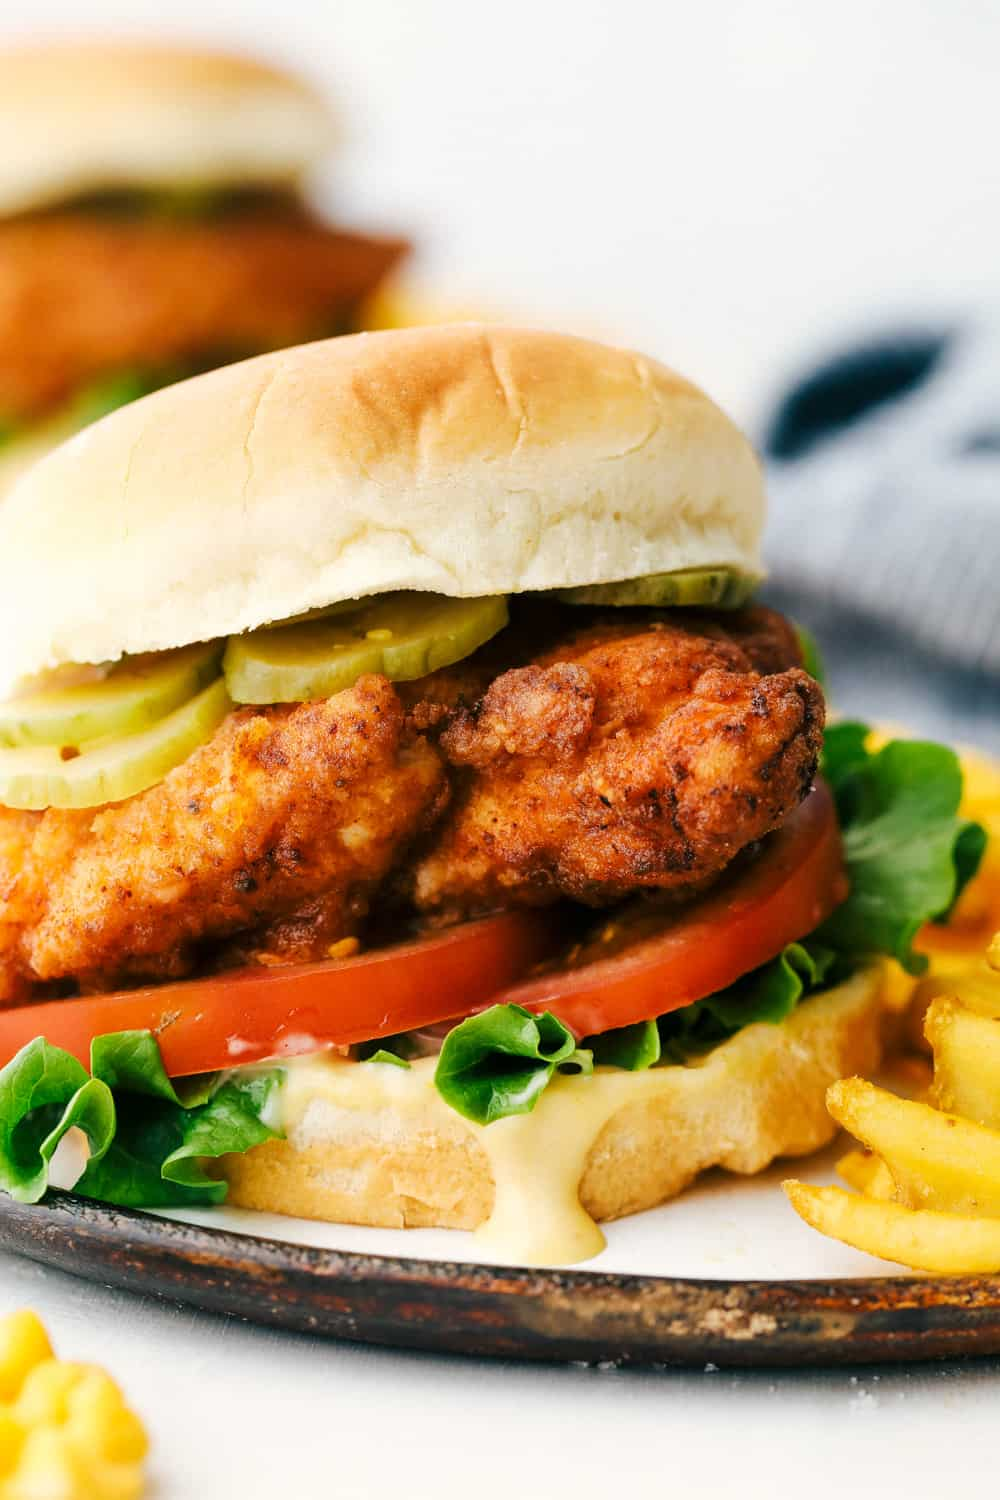 Copycat Chick-Fil-A Sandwich with fries on a plate.